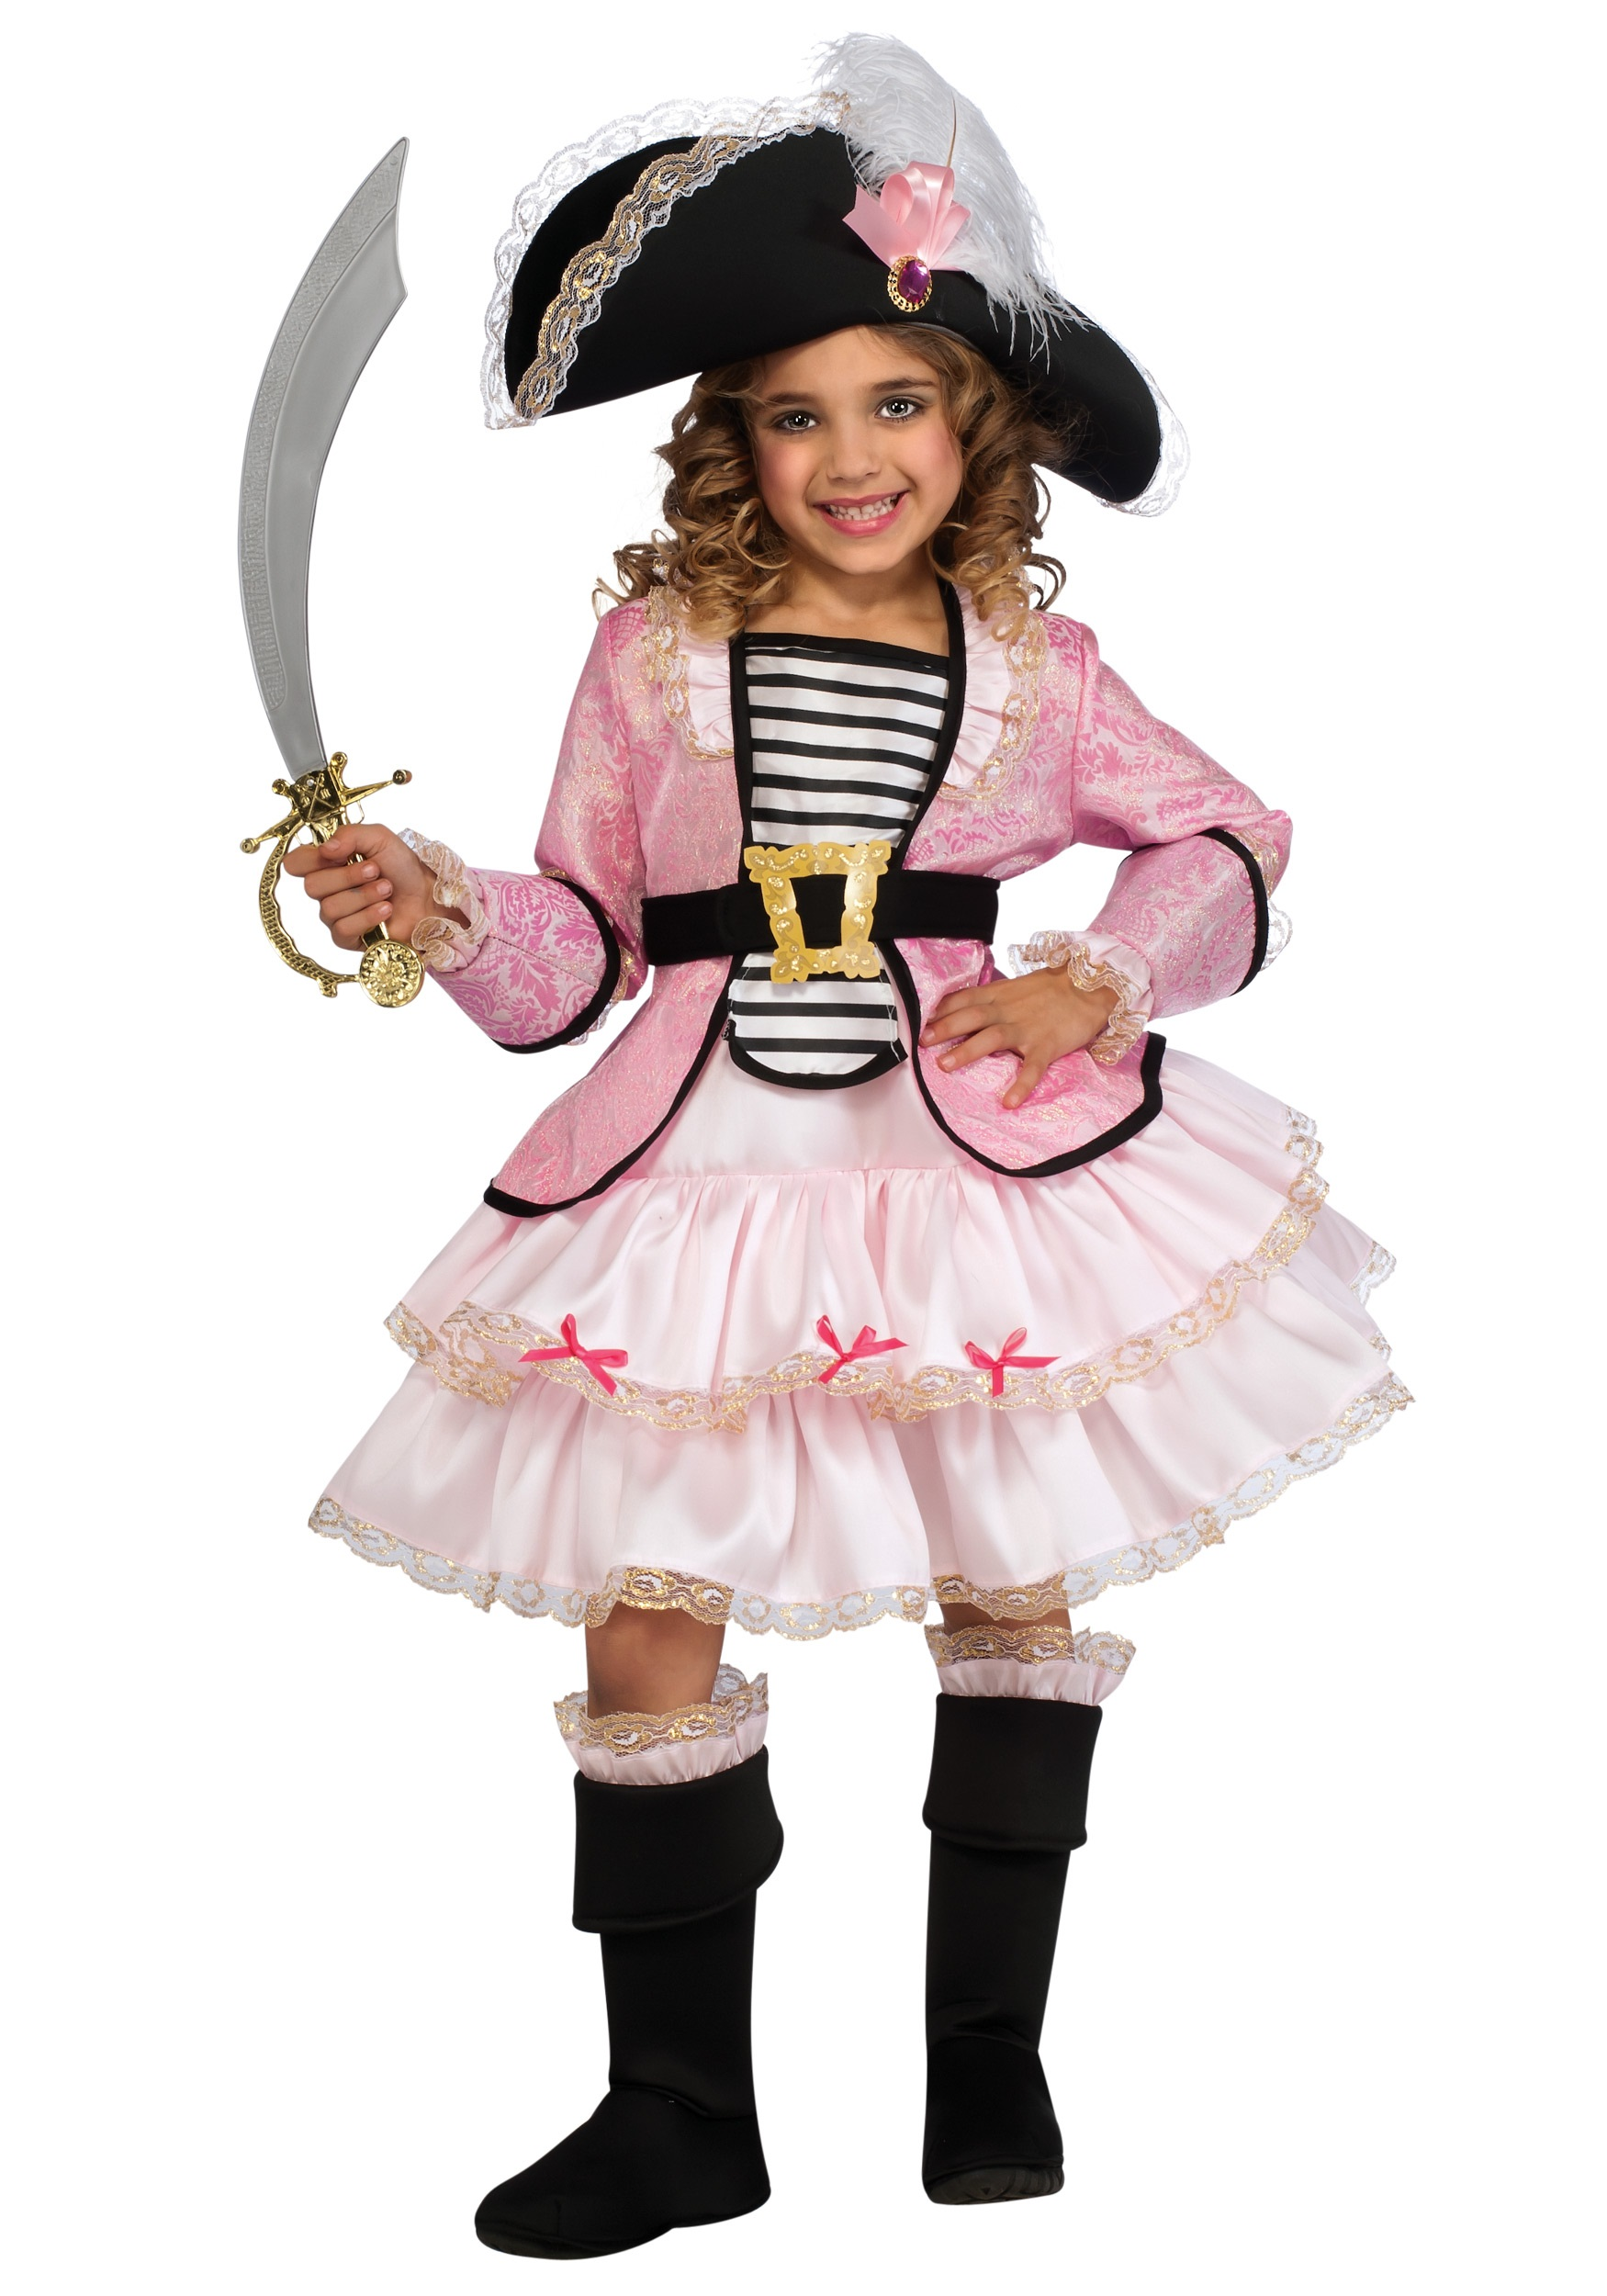 Girls Pirate Princess Costume  sc 1 st  Halloween Costumes : halloween girls costume  - Germanpascual.Com